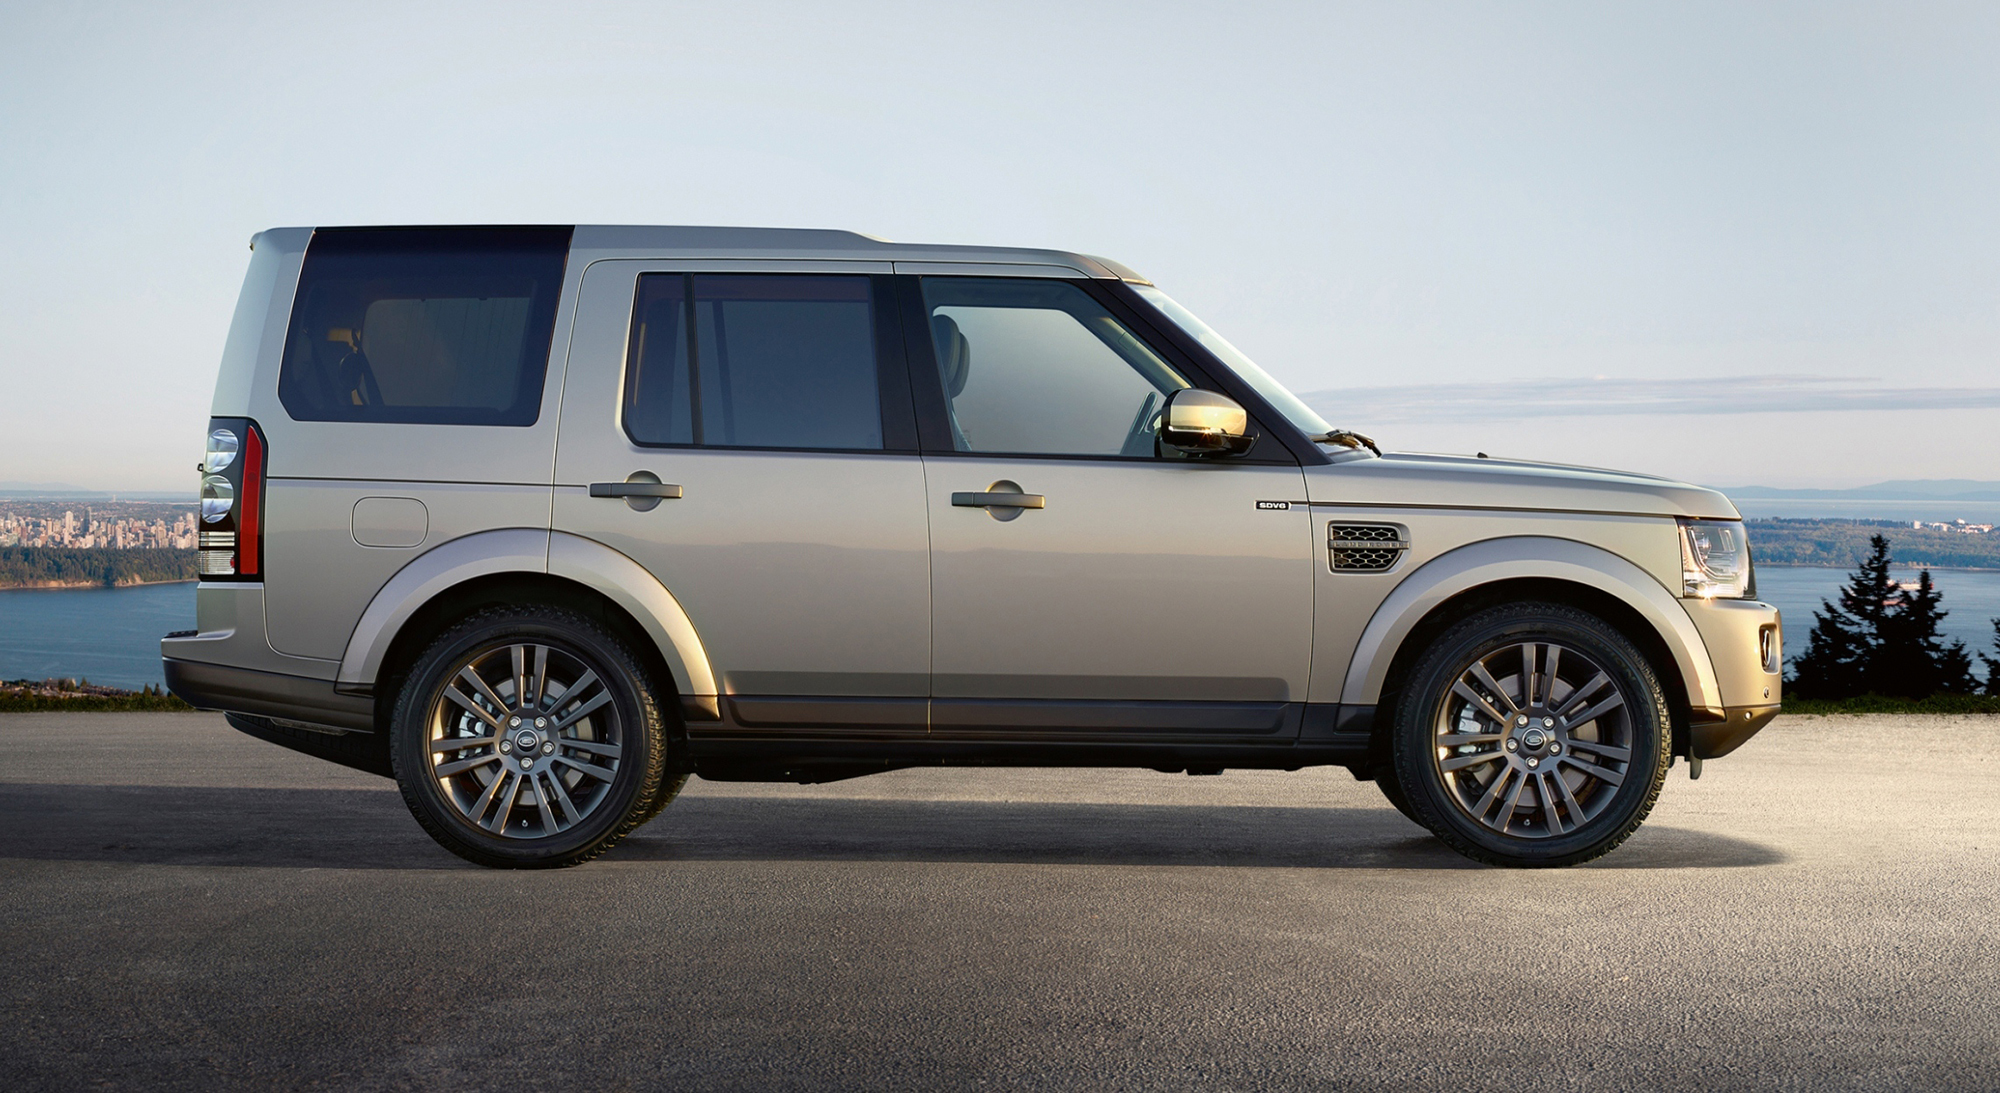 2016 Land Rover Discovery Landmark, Graphite models join ...